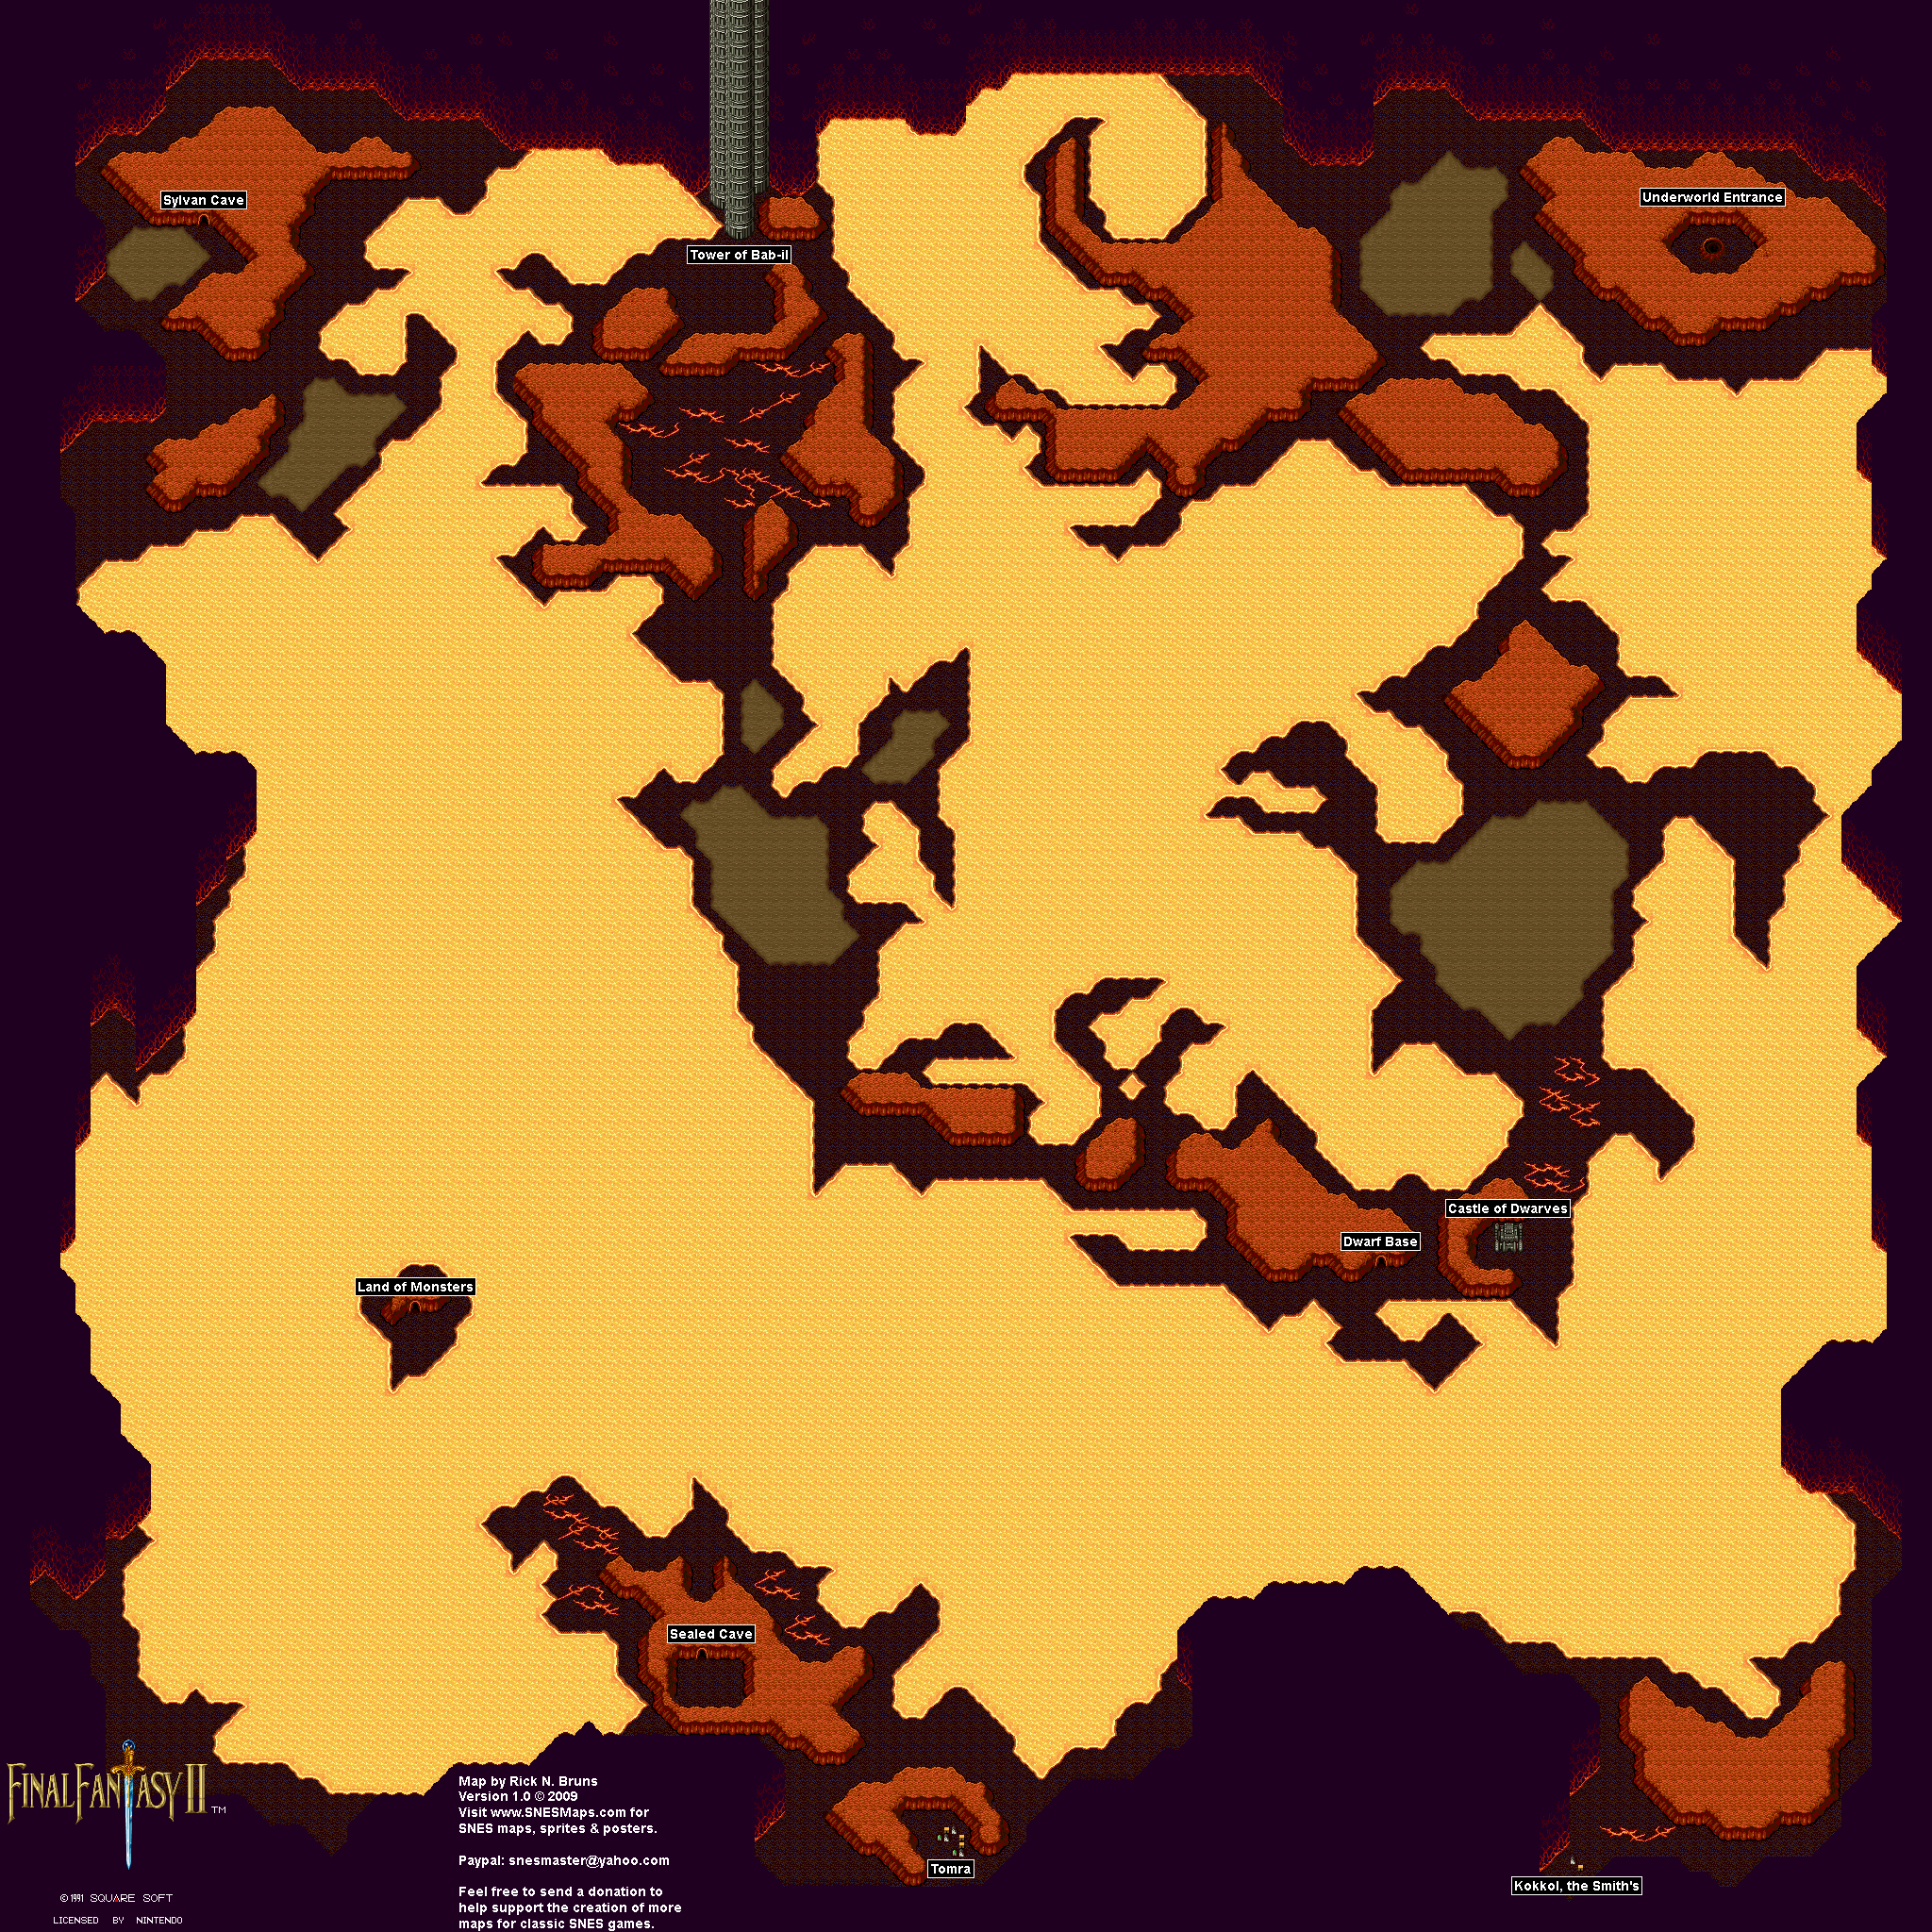 Final Fantasy II 2 (IV 4) Map Selection - Labeled Maps